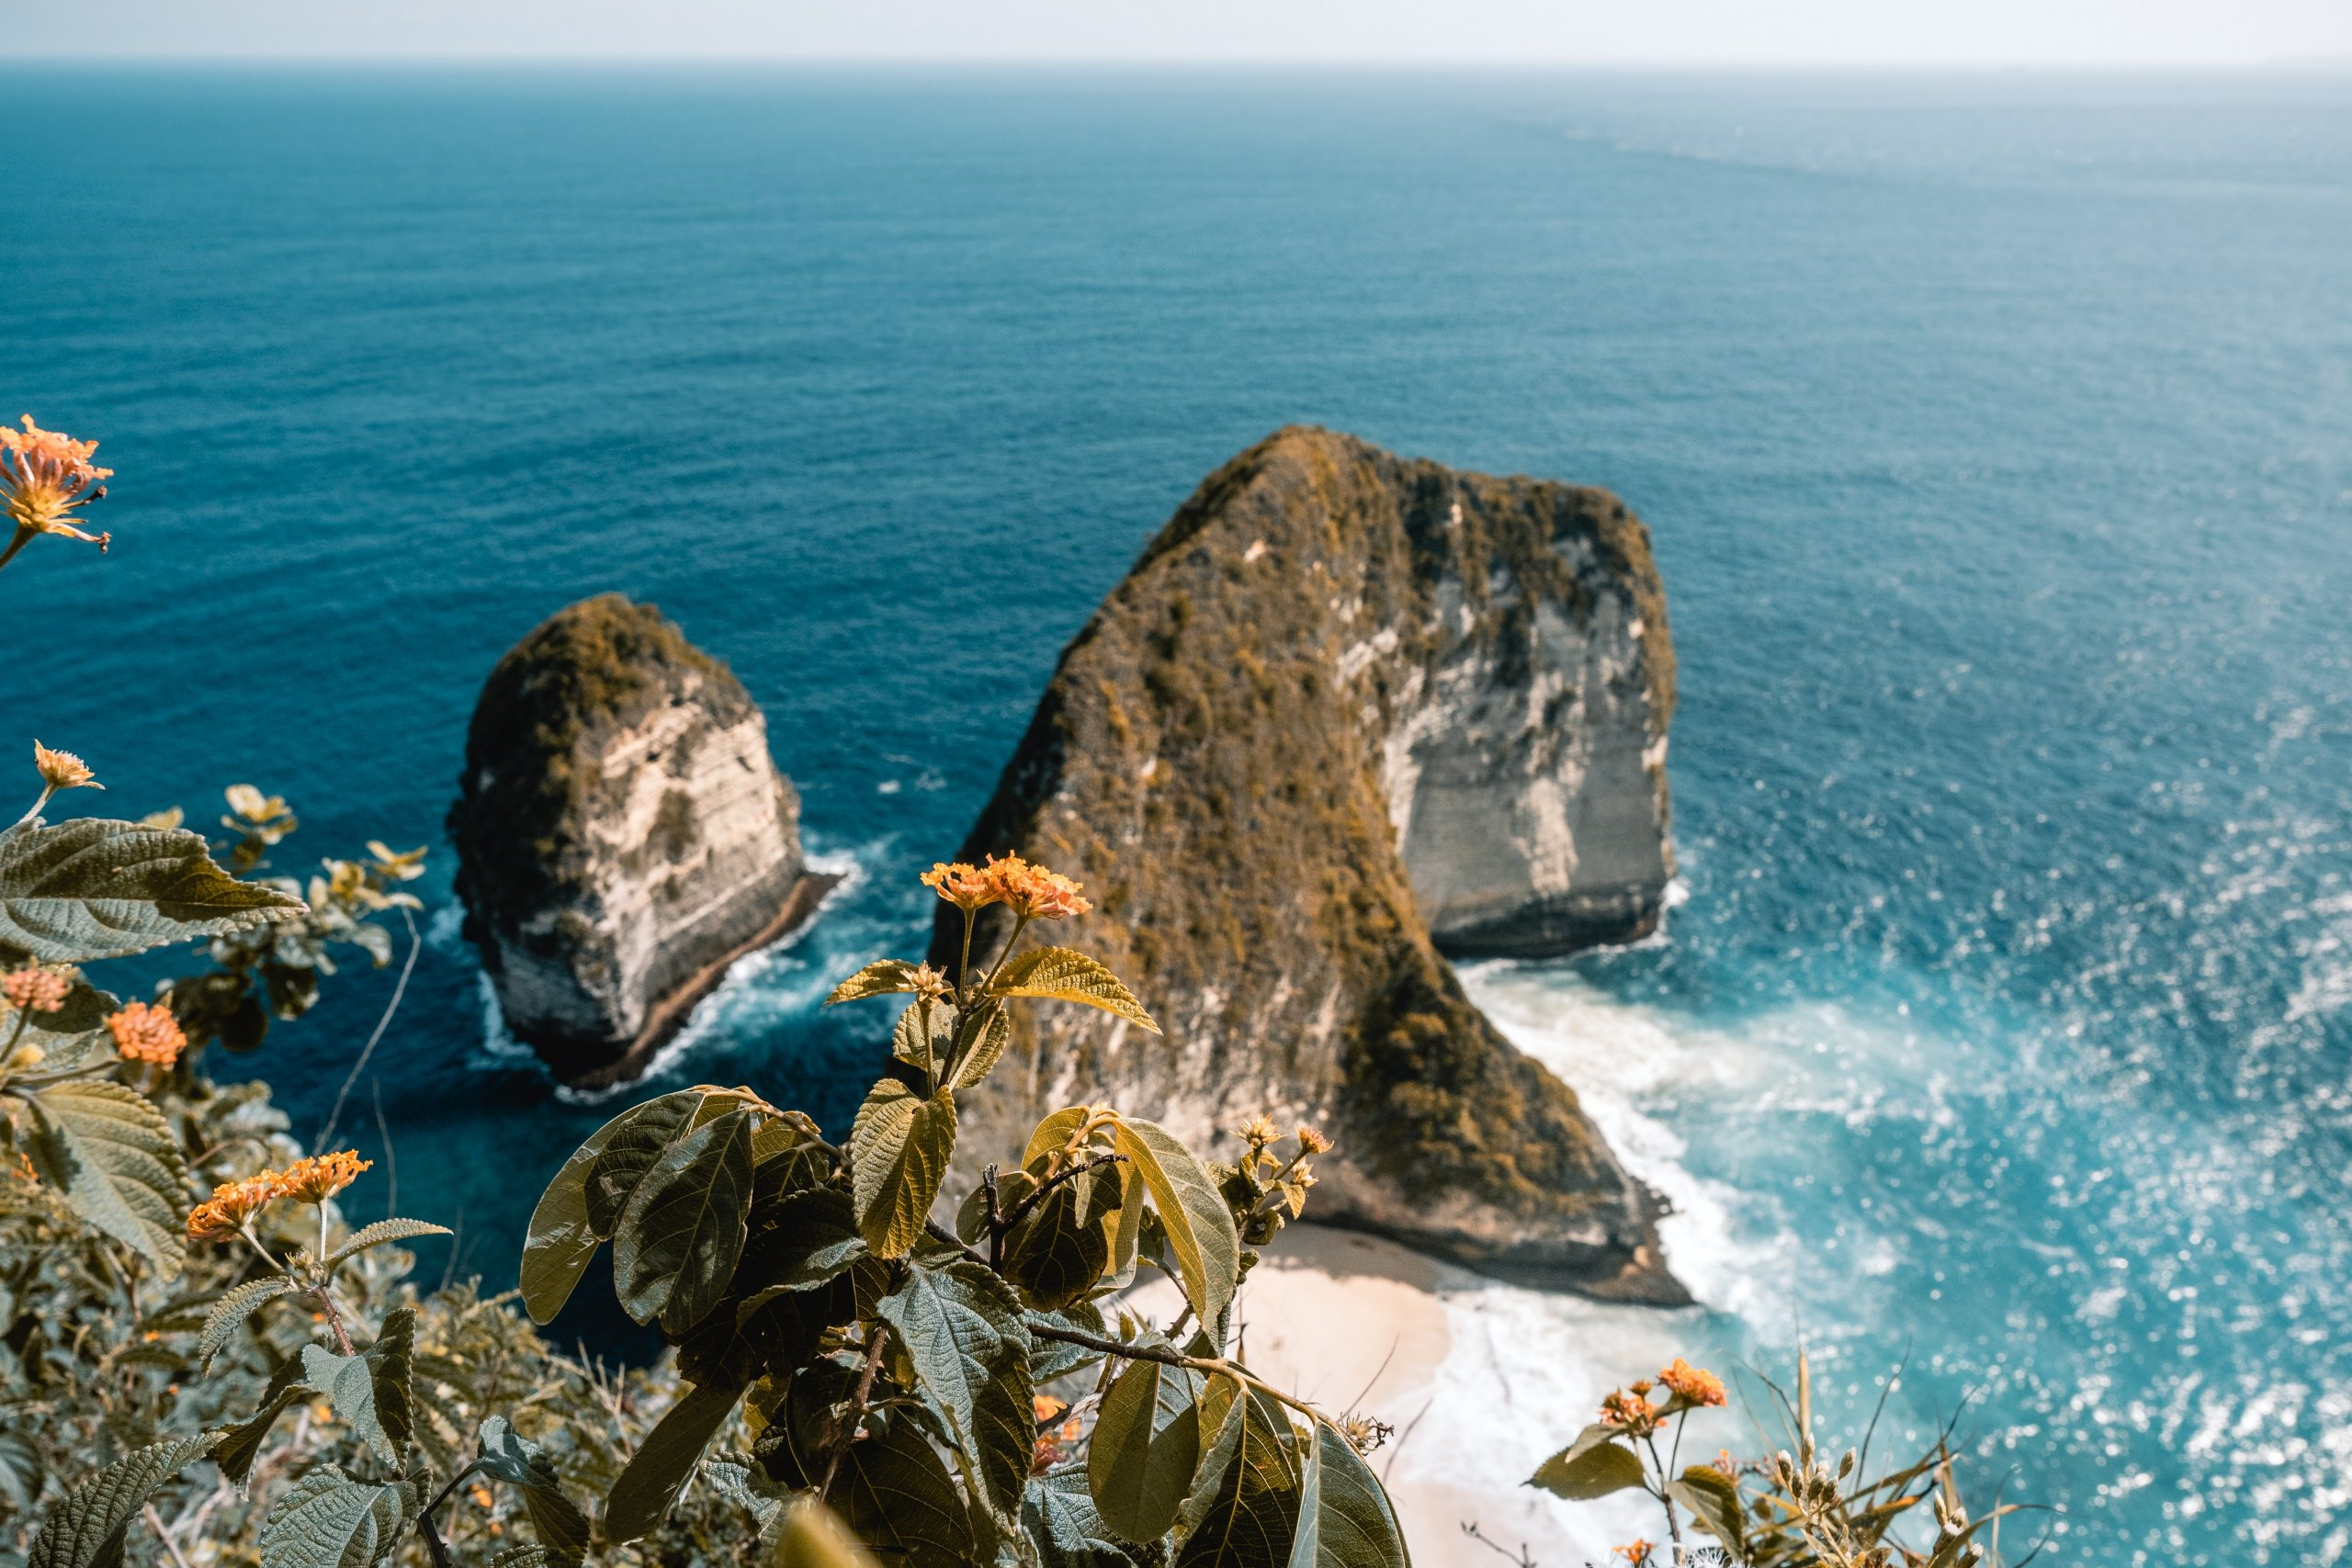 a view over kelingking beach on nusa penida, bali island, kelingking beach and crystal blue water, is nusa penida worth the hype?